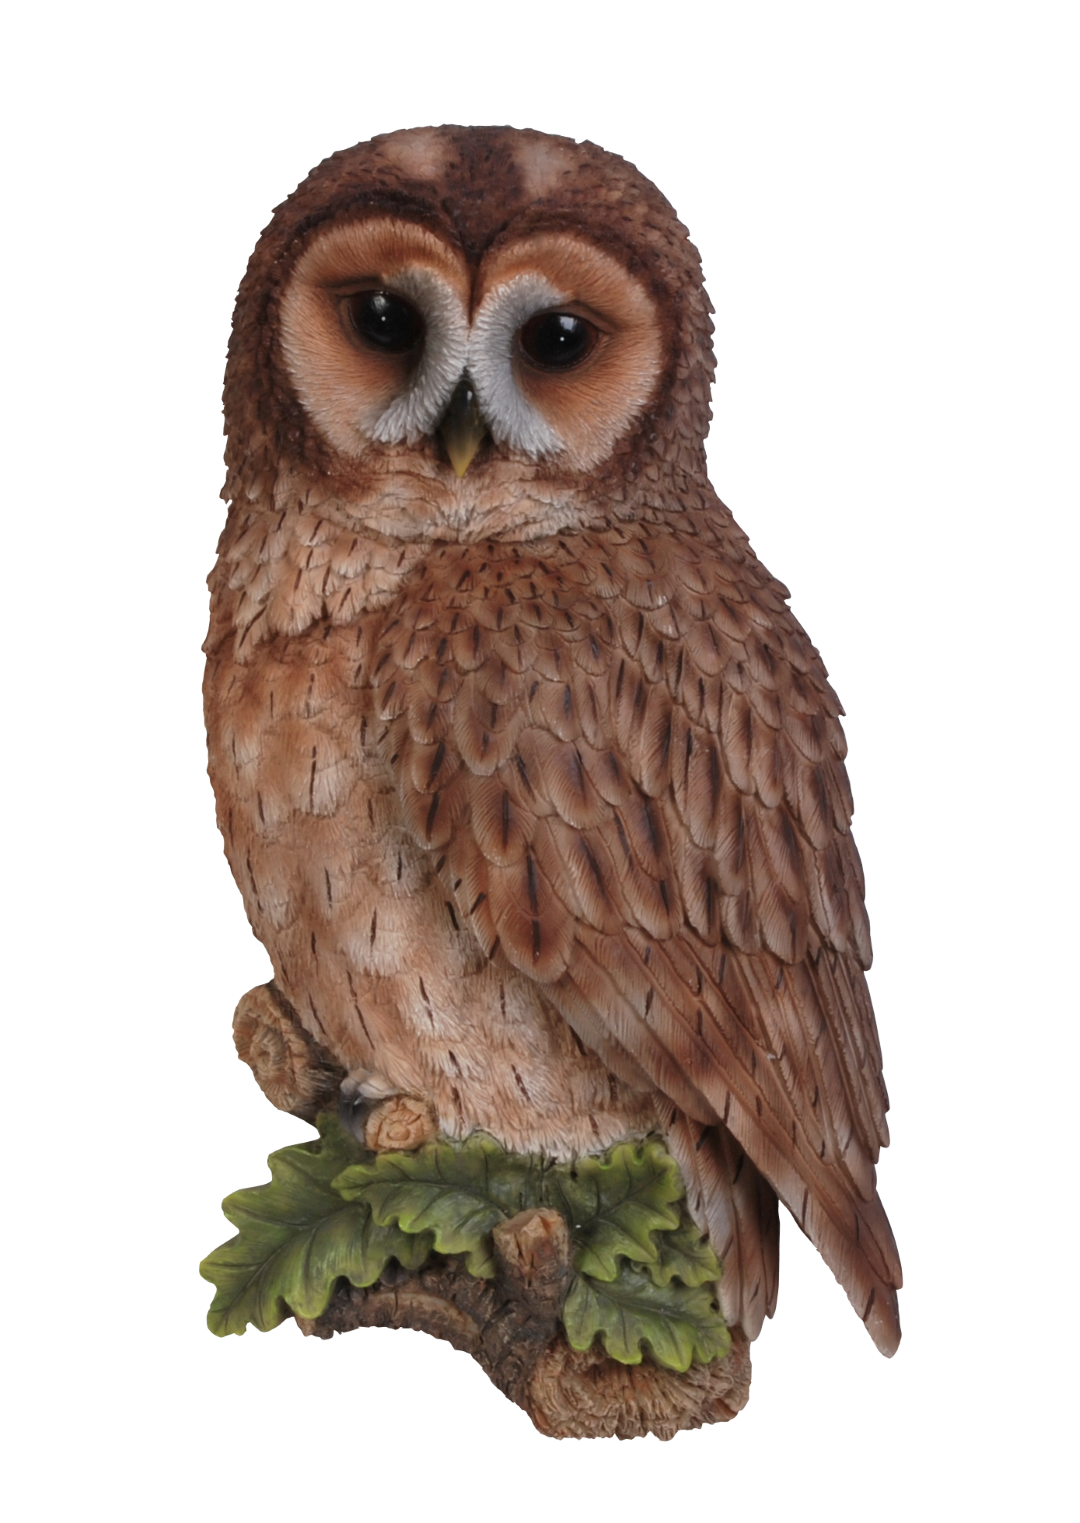 Tawny Owl Wall plaque by Vivid Arts - Wall Ornaments - Pictures, Tiles u0026  Tapestries - Home u0026 Gift | Mill Race Garden Centre - Tawny Owl PNG